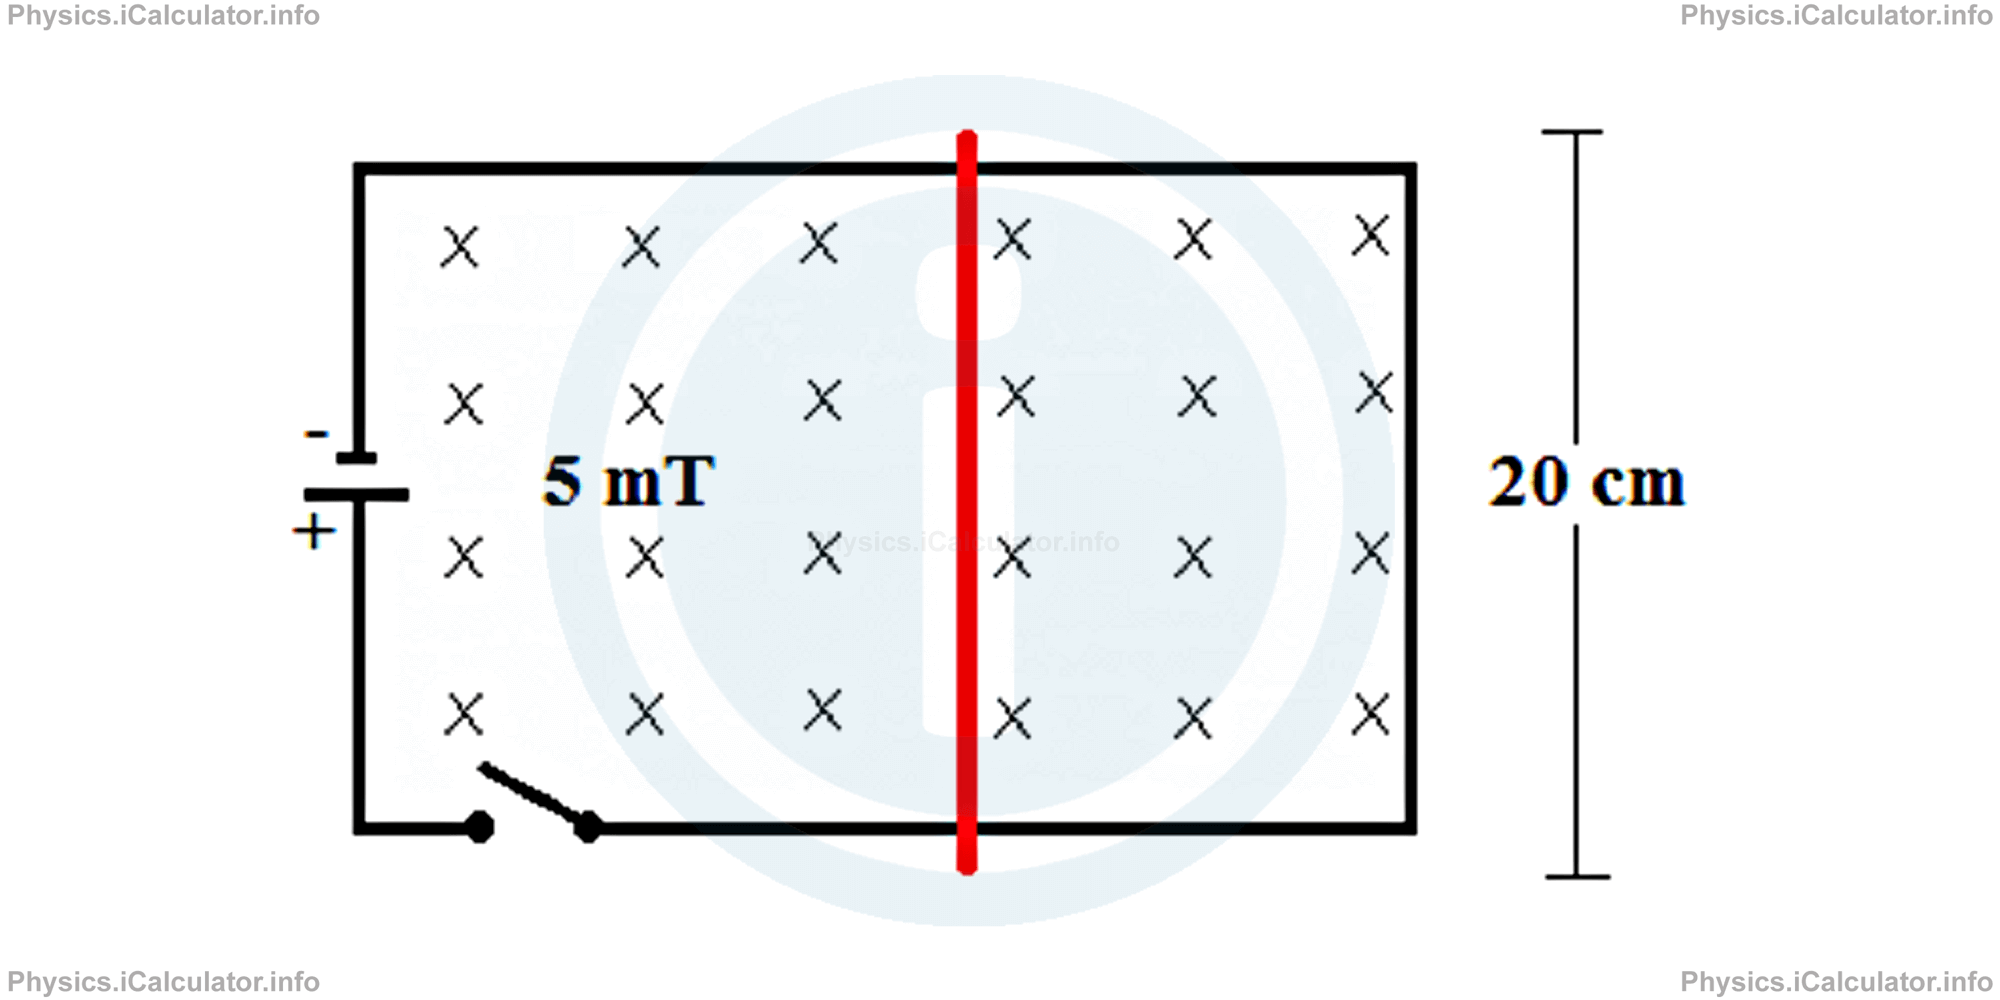 Physics Tutorials: This image provides visual information for the physics tutorial Magnetic Force on a Current Carrying Wire. Ampere's Force